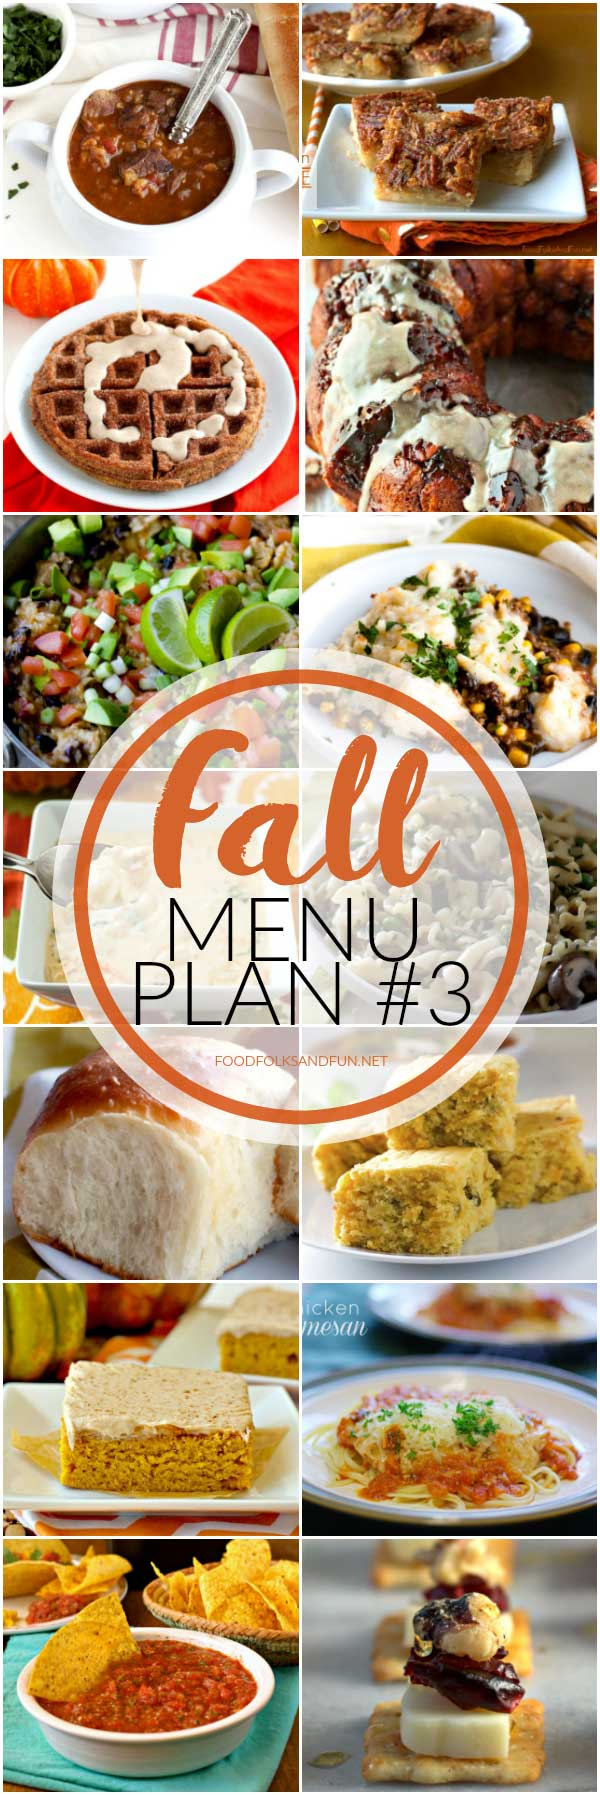 Fall-themed dinner recipes in a collage with text overlay for Pinterest